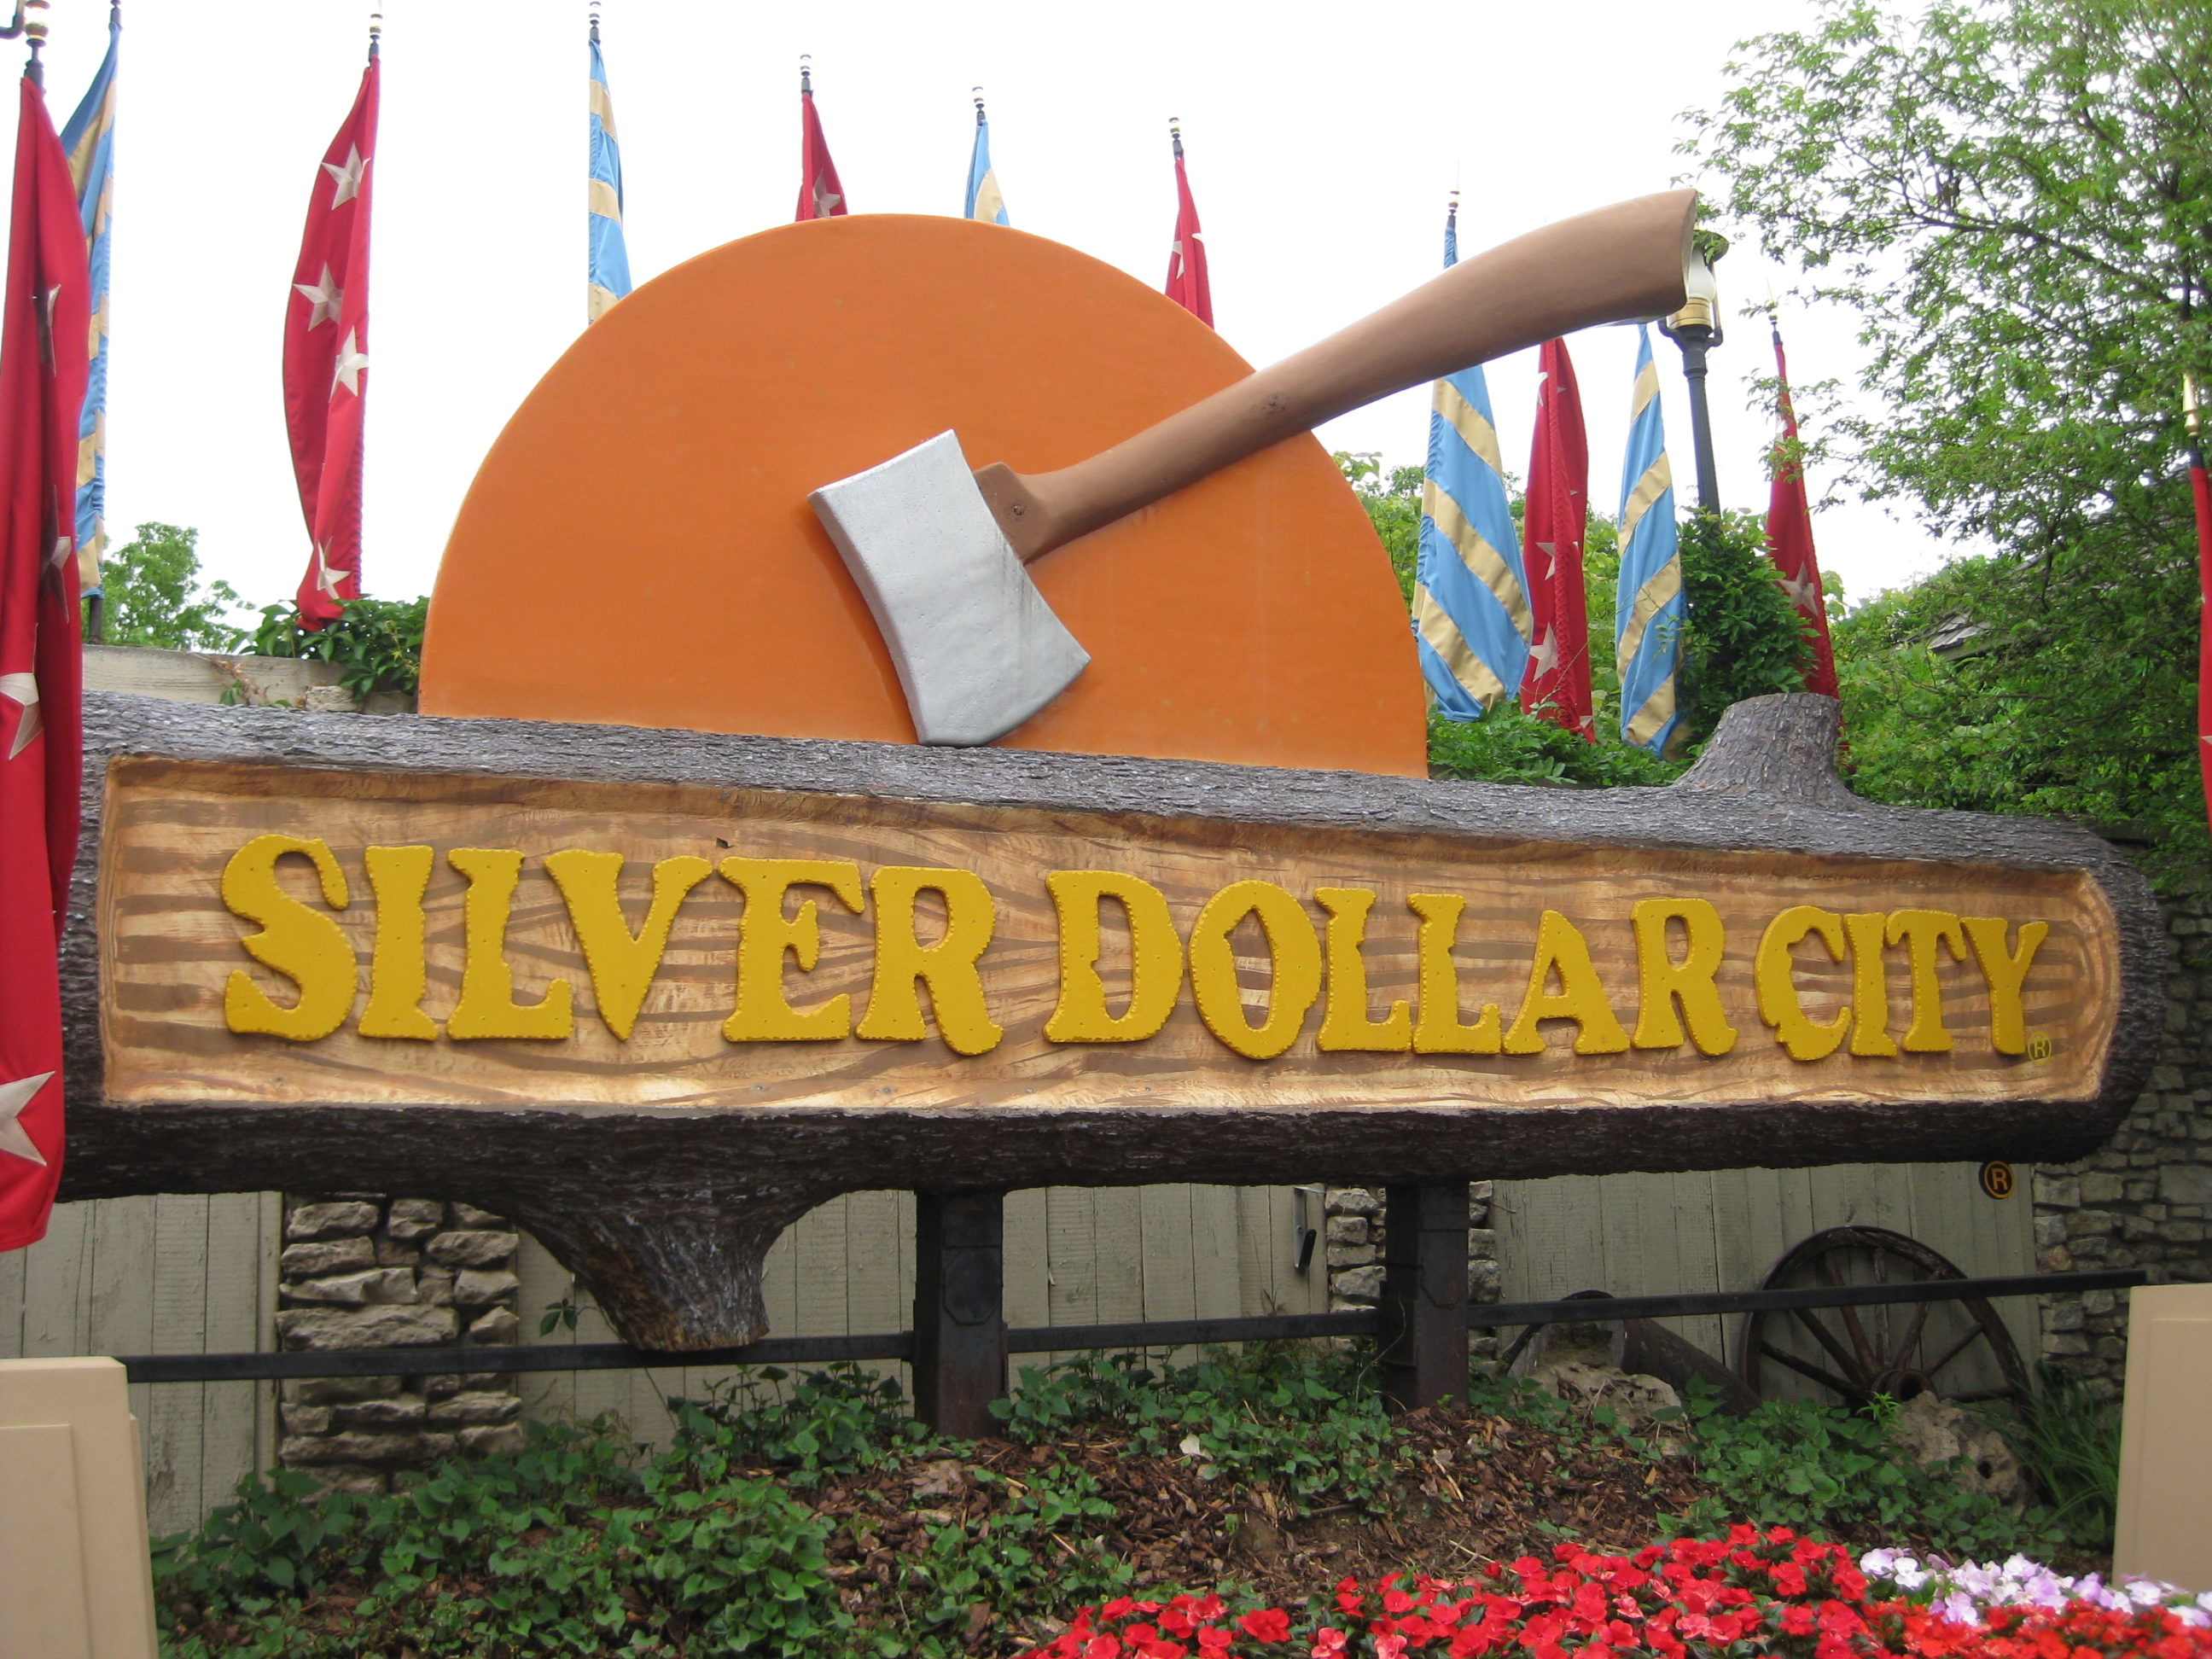 Silver dollar city theme park home page branson missouri for 6167 motors crystal city mo